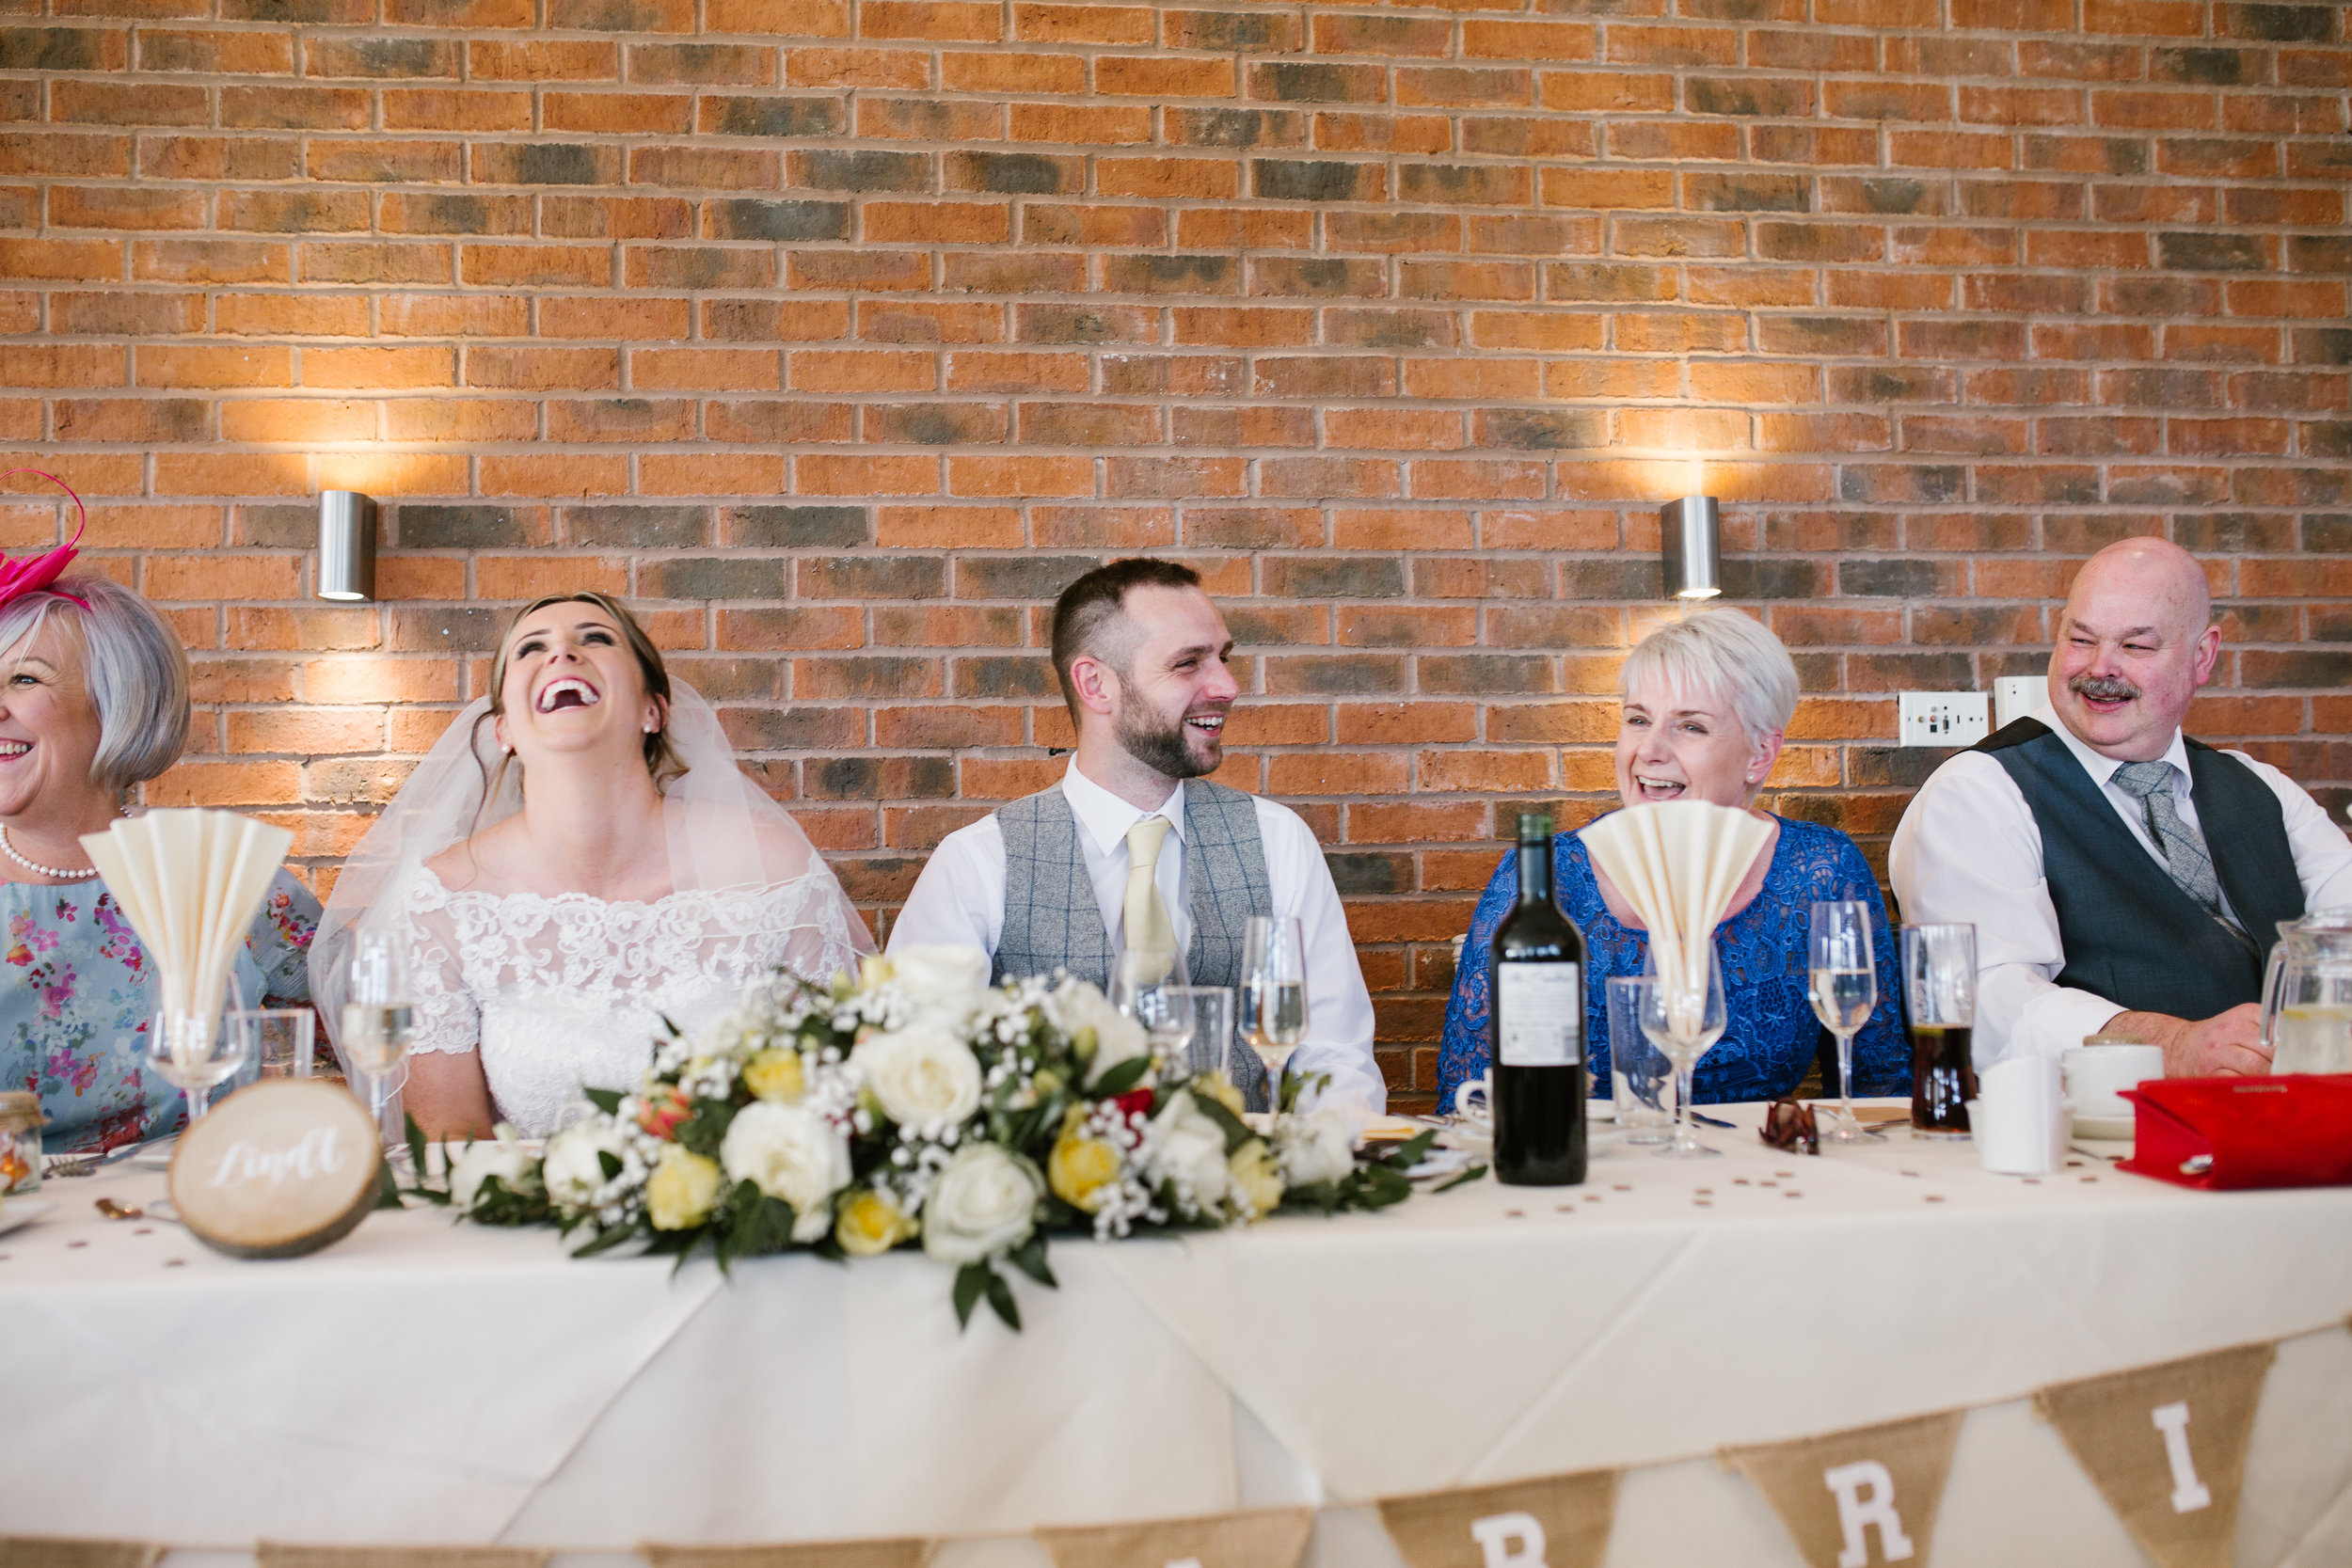 the top tabel laughing together during the wedding speeches